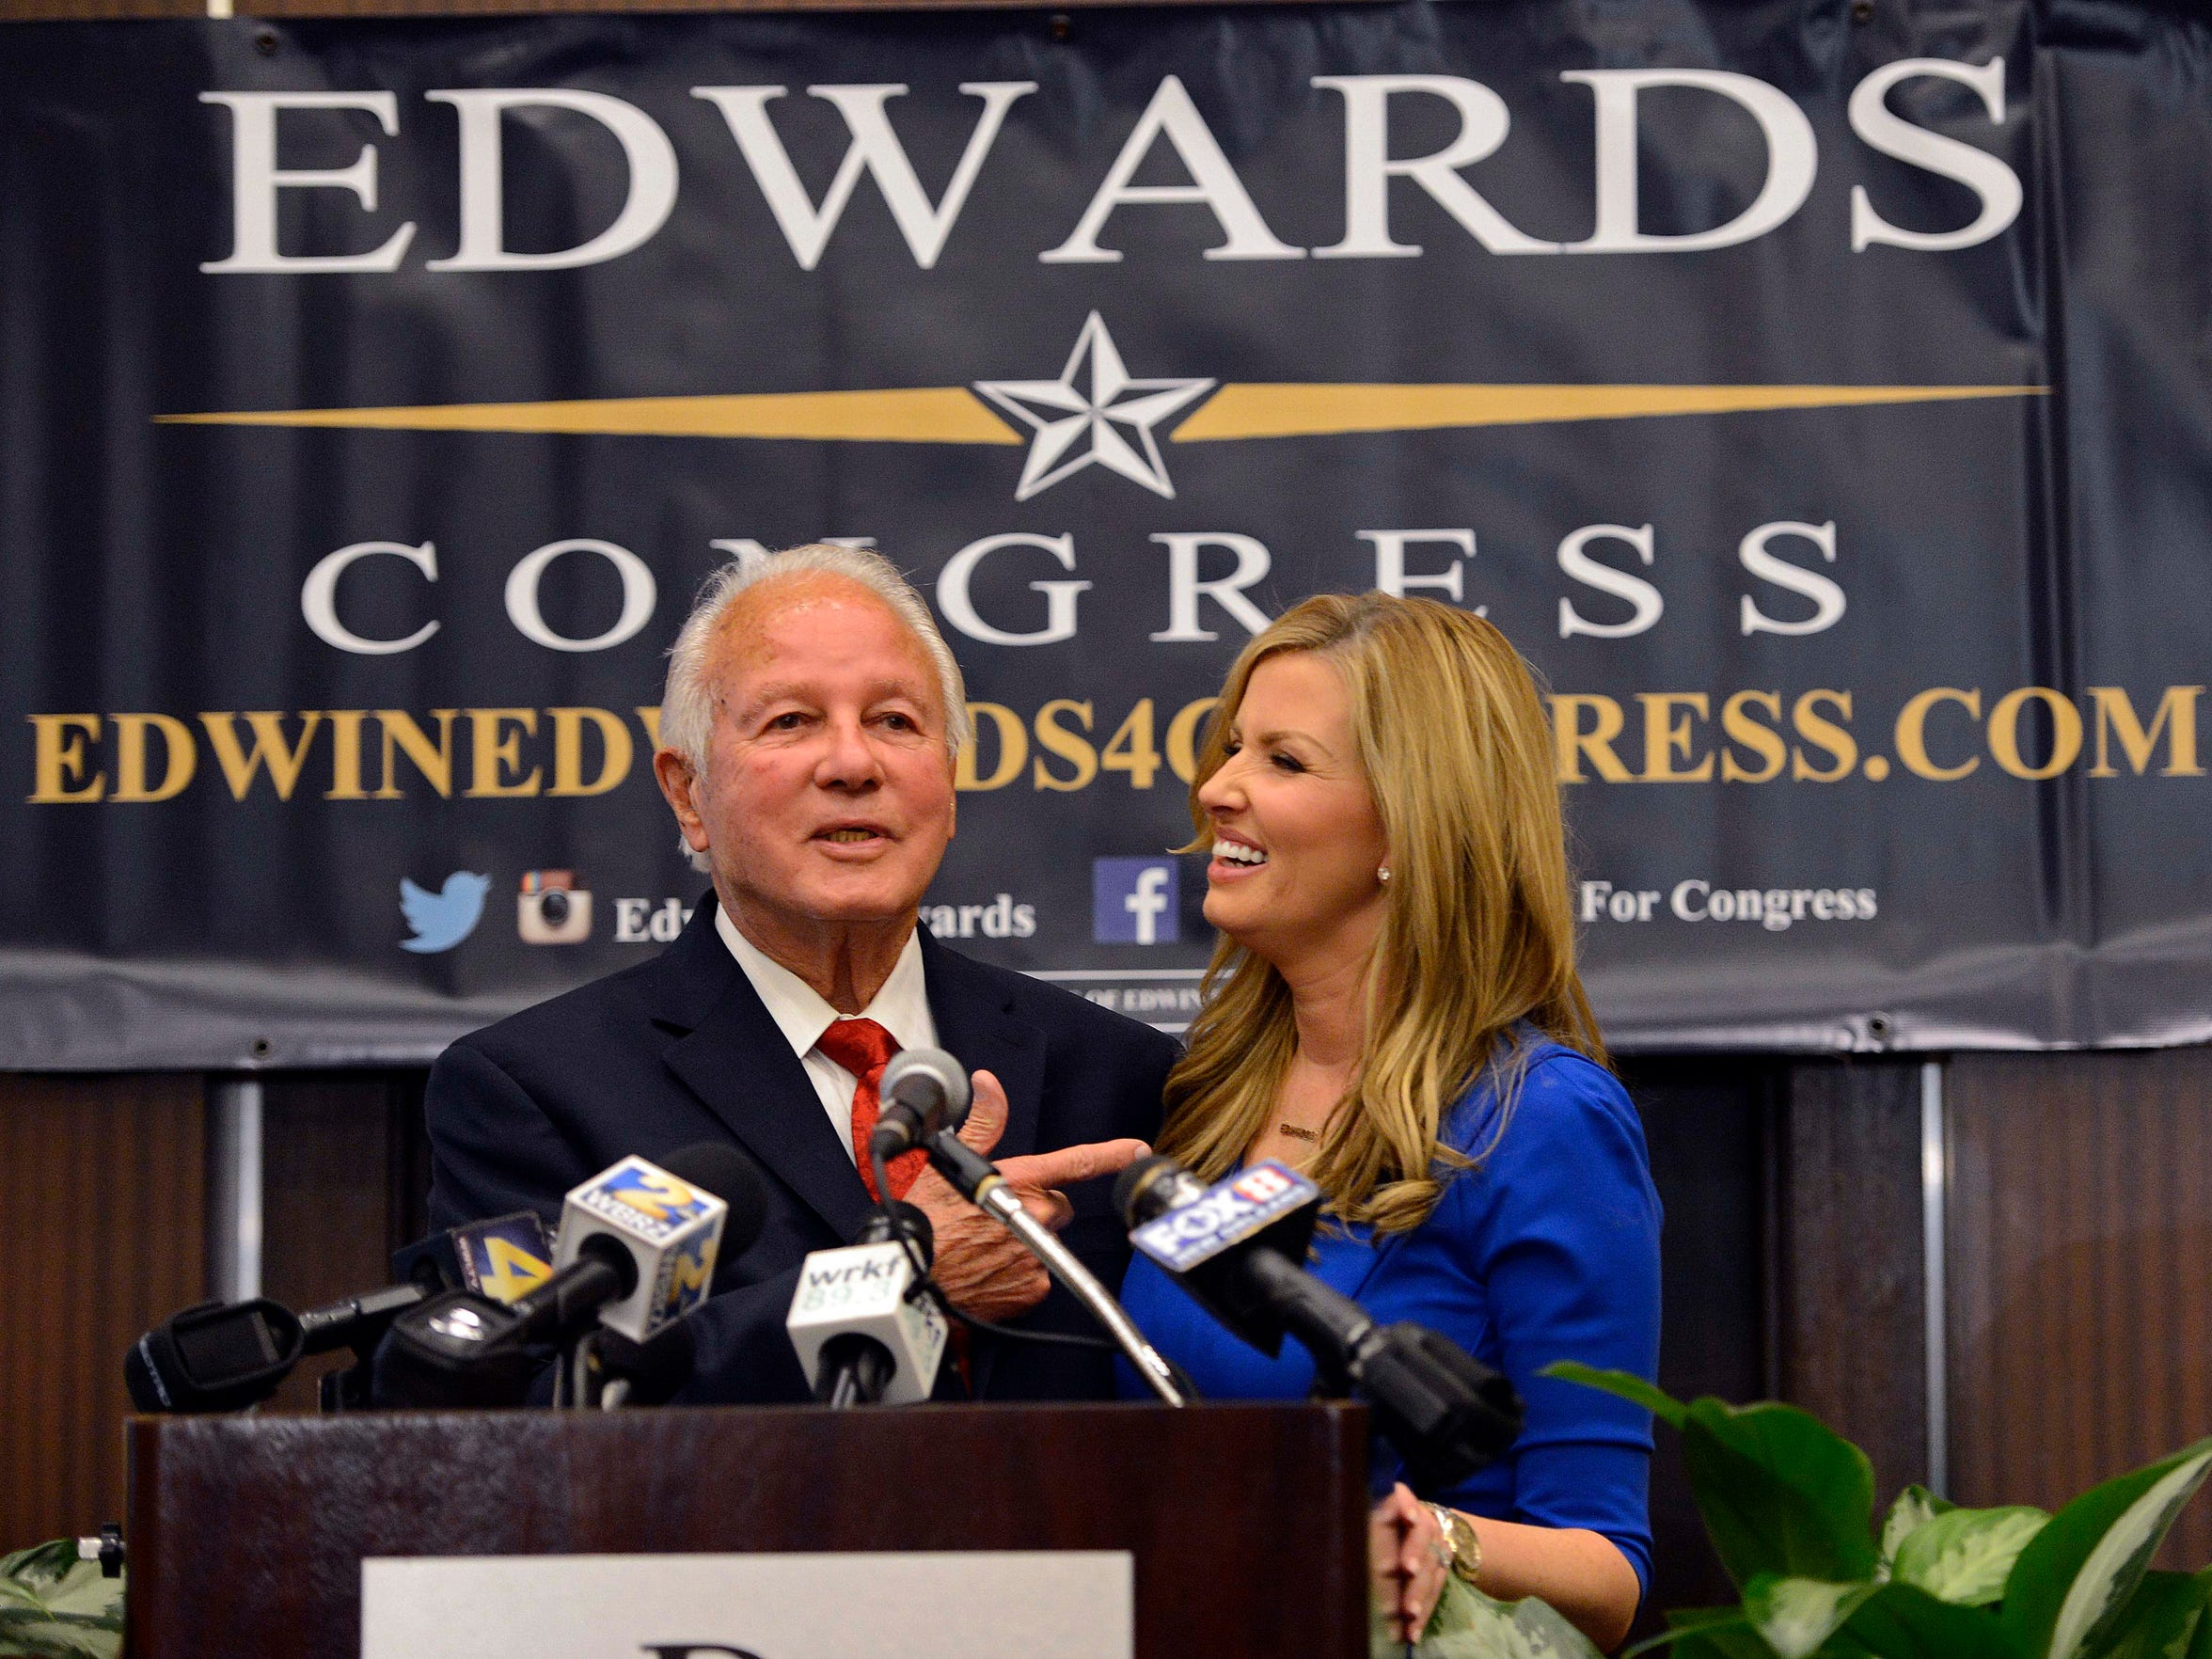 Edwin Edwards made headlines in 2014 when he ran for